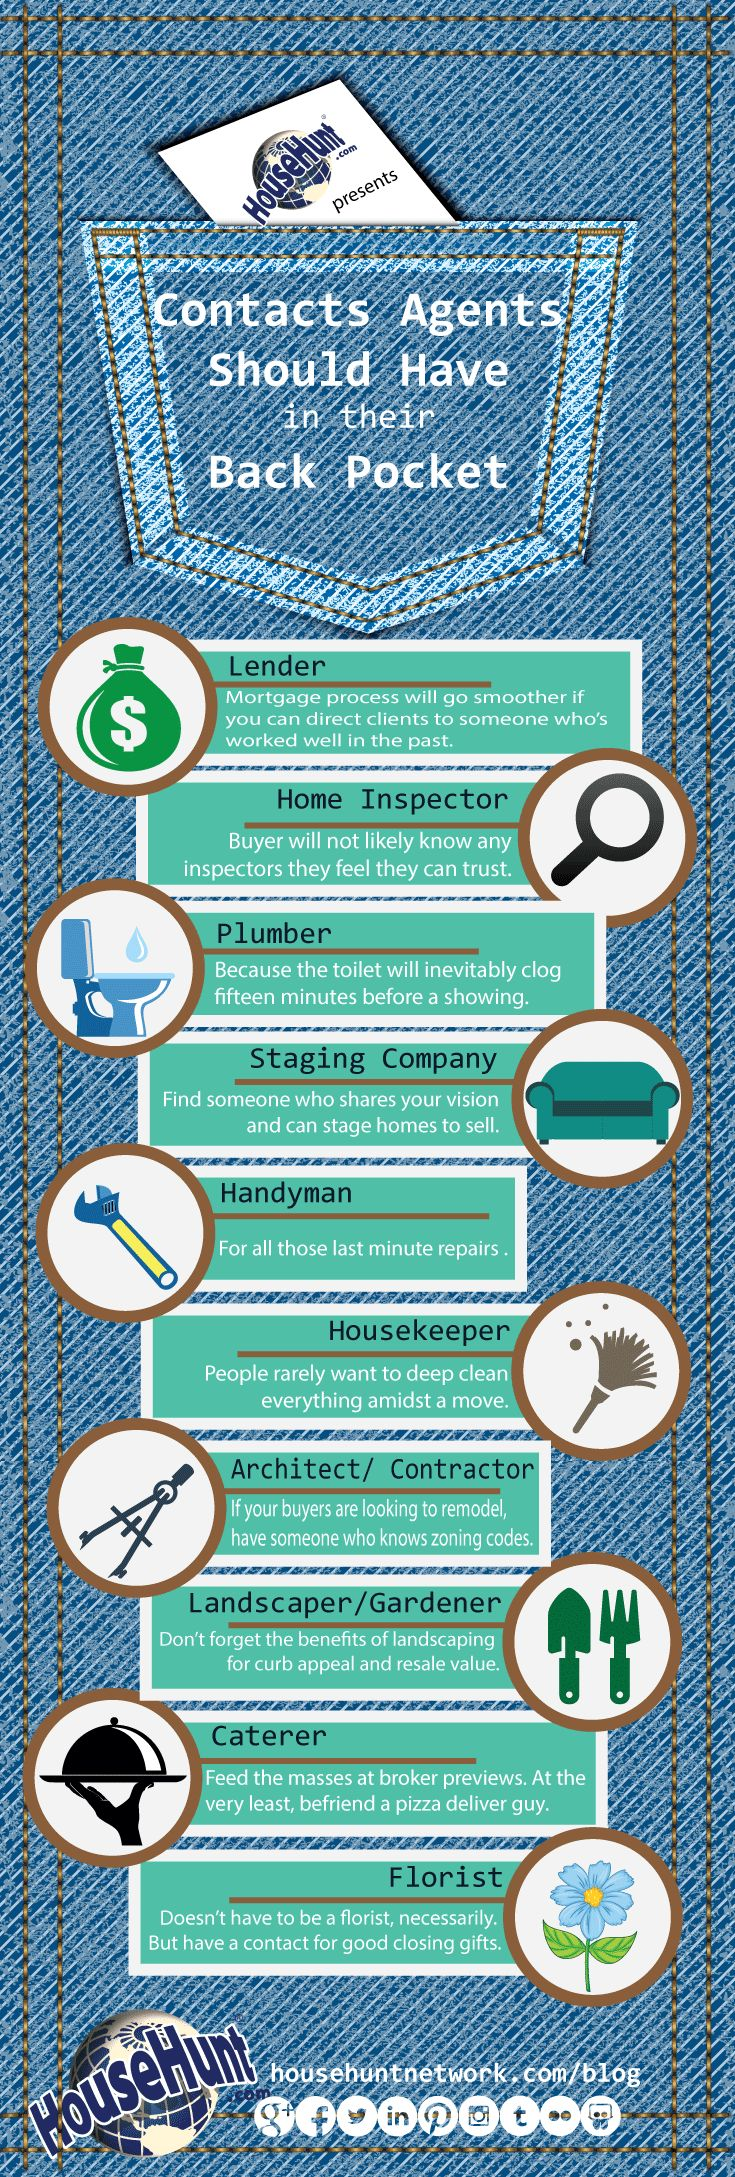 People to Have in Back Pocket 10 Contacts Agents Should Have in Their Back Pocket [Infographic]